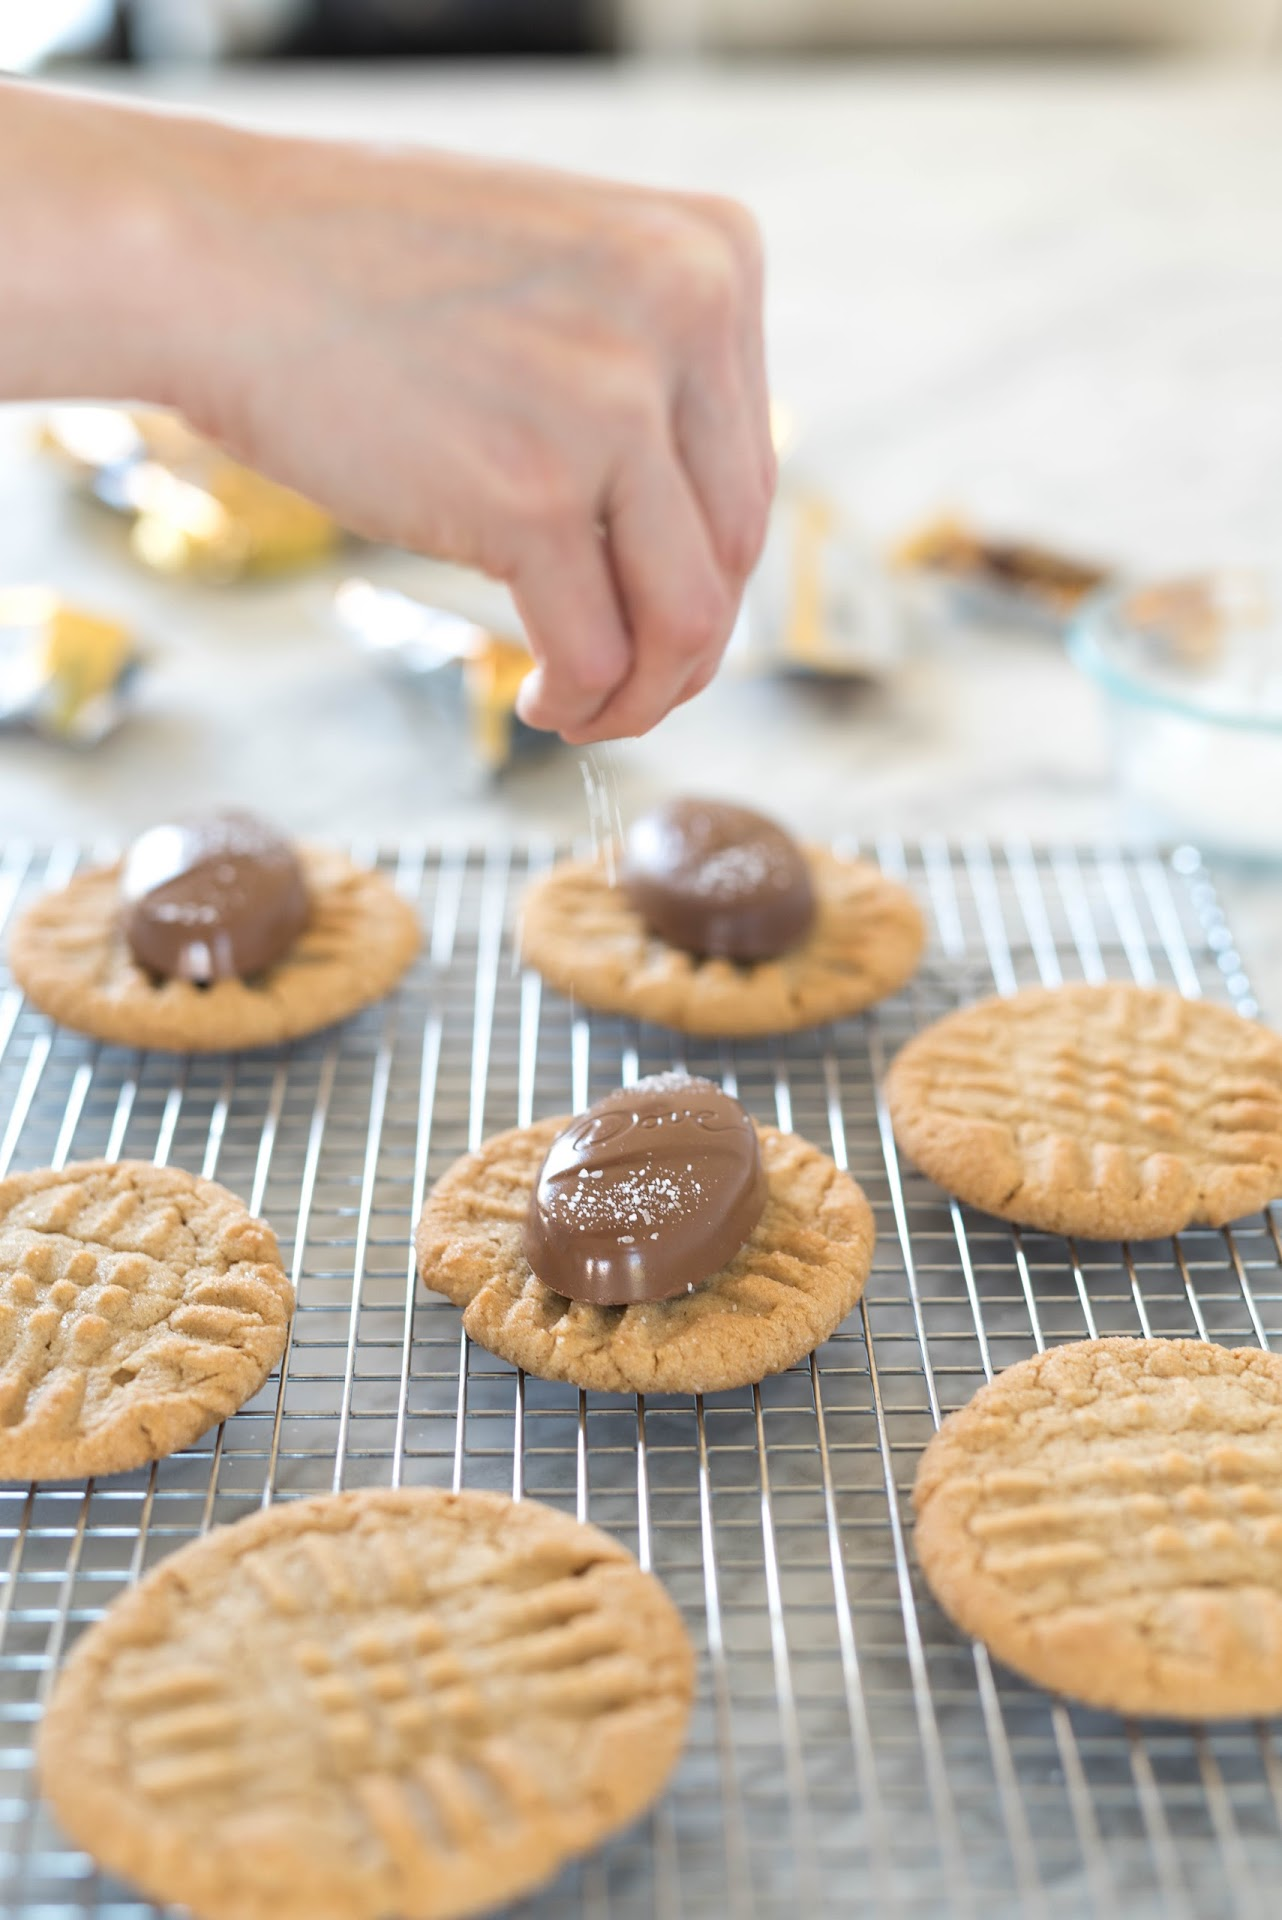 best peanut butter cookies, salt chocolate, recipe, easter dessert, ideas, easter treat, snack, food, bunny crafts, rabbit, easter rabbit, cookie bag tutorial, diy, cookie envelope, easter craft, pink, salted desserts, kosher salt, chocolate easter egg